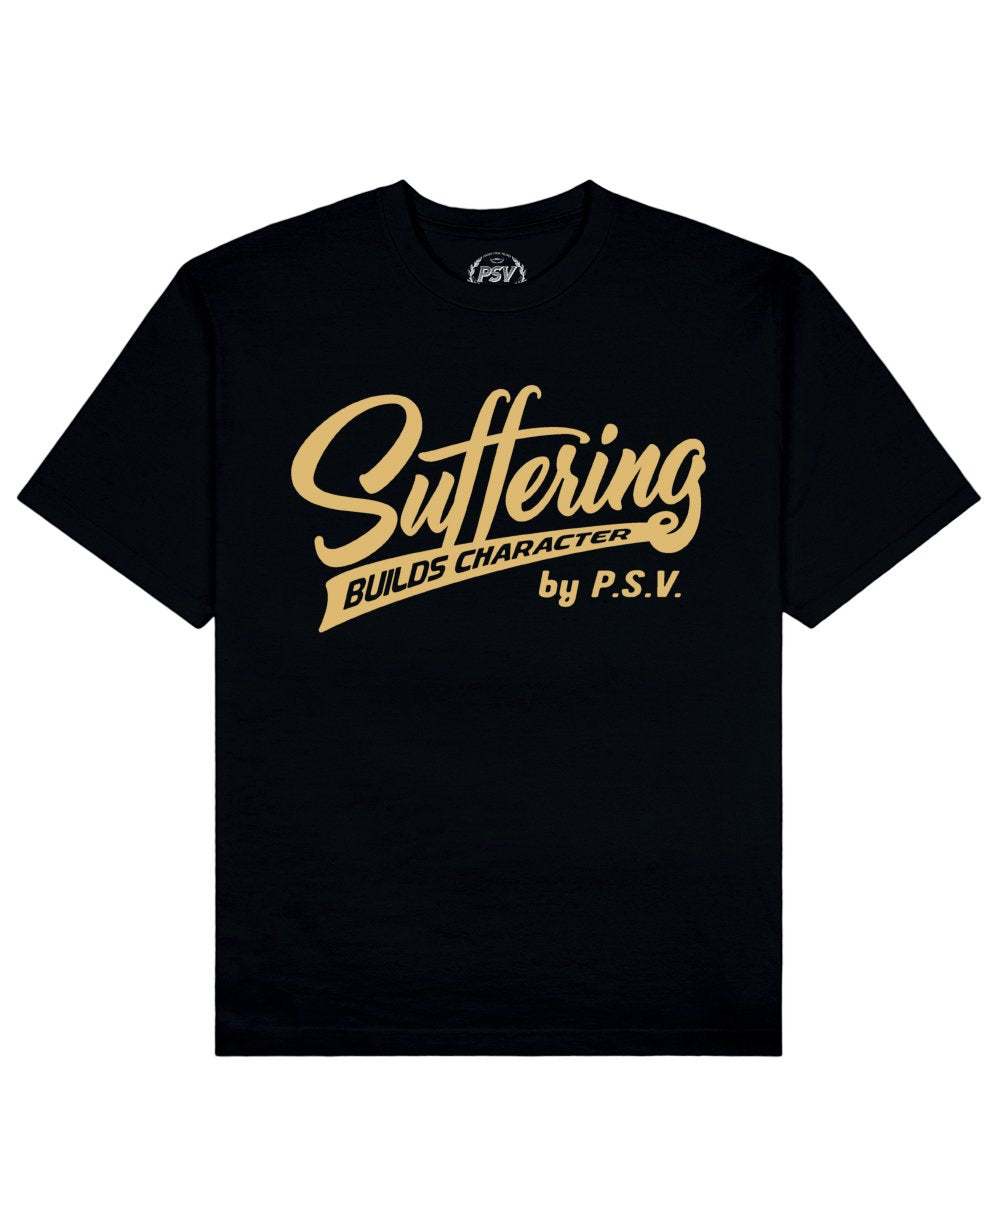 Suffering Builds Character Print T-Shirt in Black - T-Shirts - PSV - BRANMA